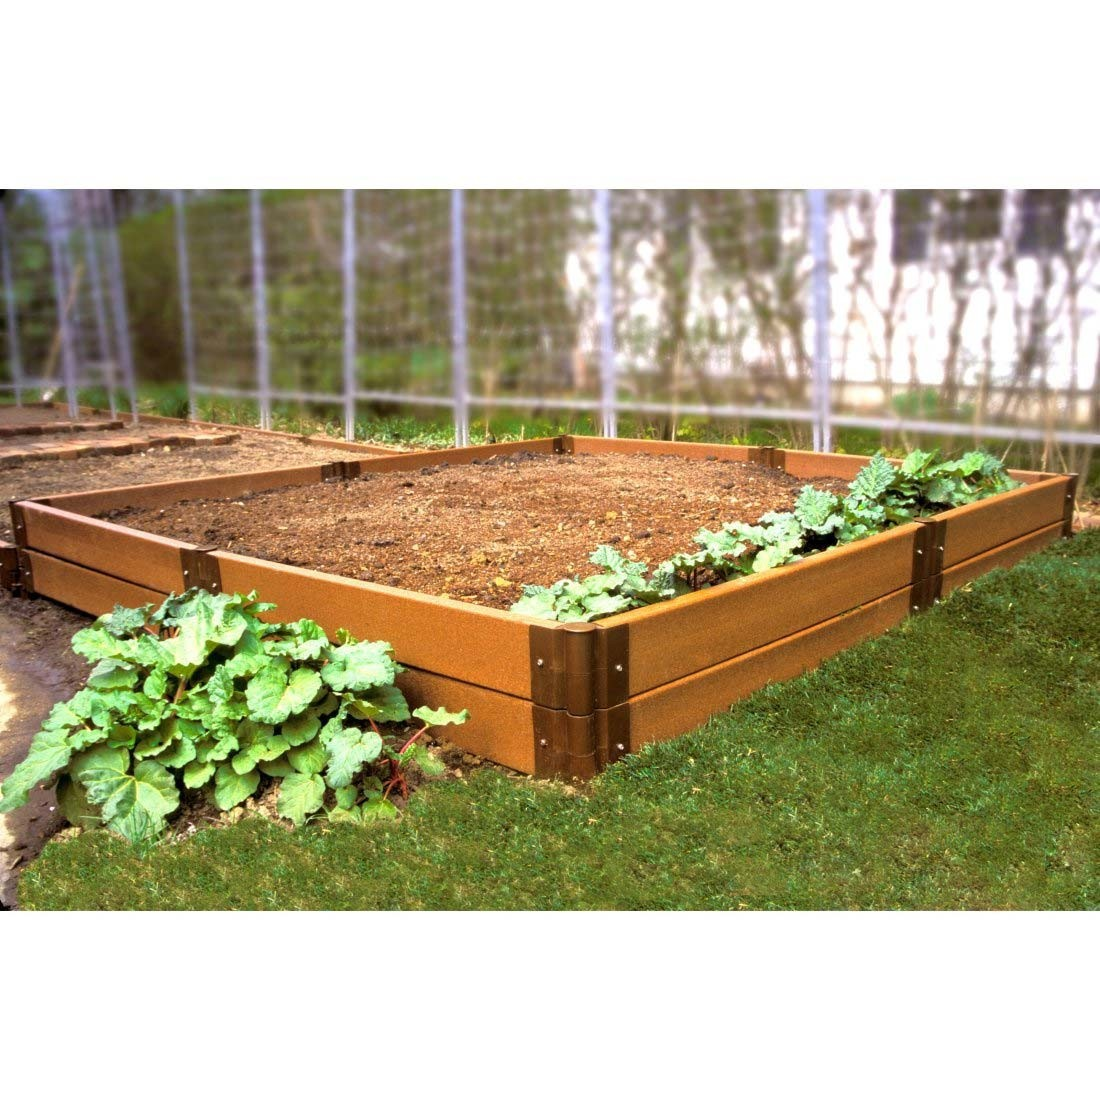 Raised garden beds ideas for growing images Raised garden beds